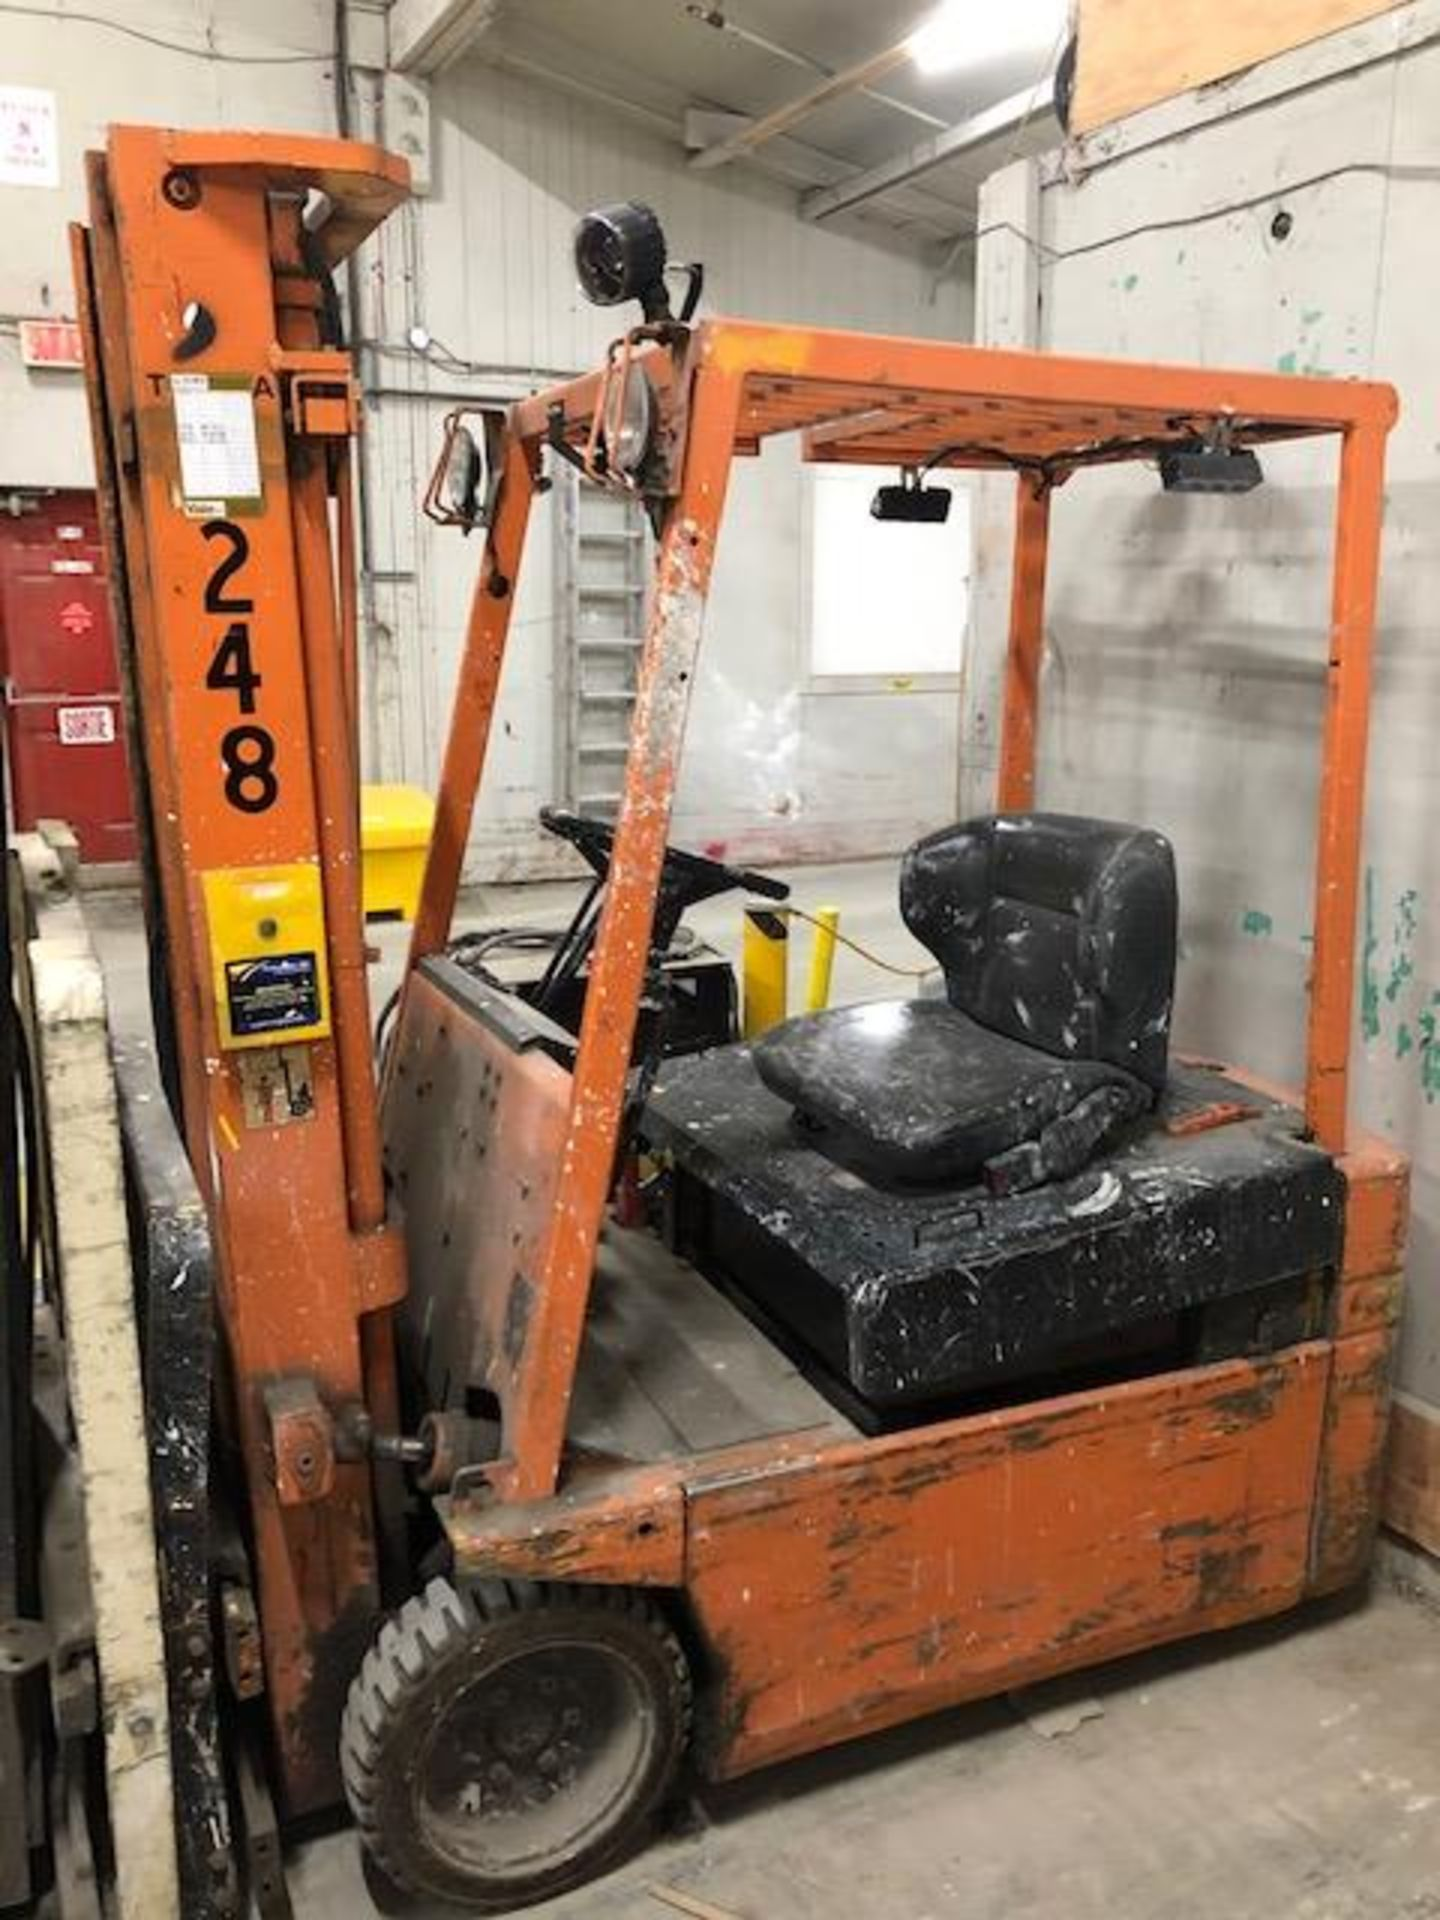 Lot 60 - 2002, electric forklift Toyota, 2,900lbs, 3 stage mast, side shift, 3 wheels, Model: 2FBE15, s/n: